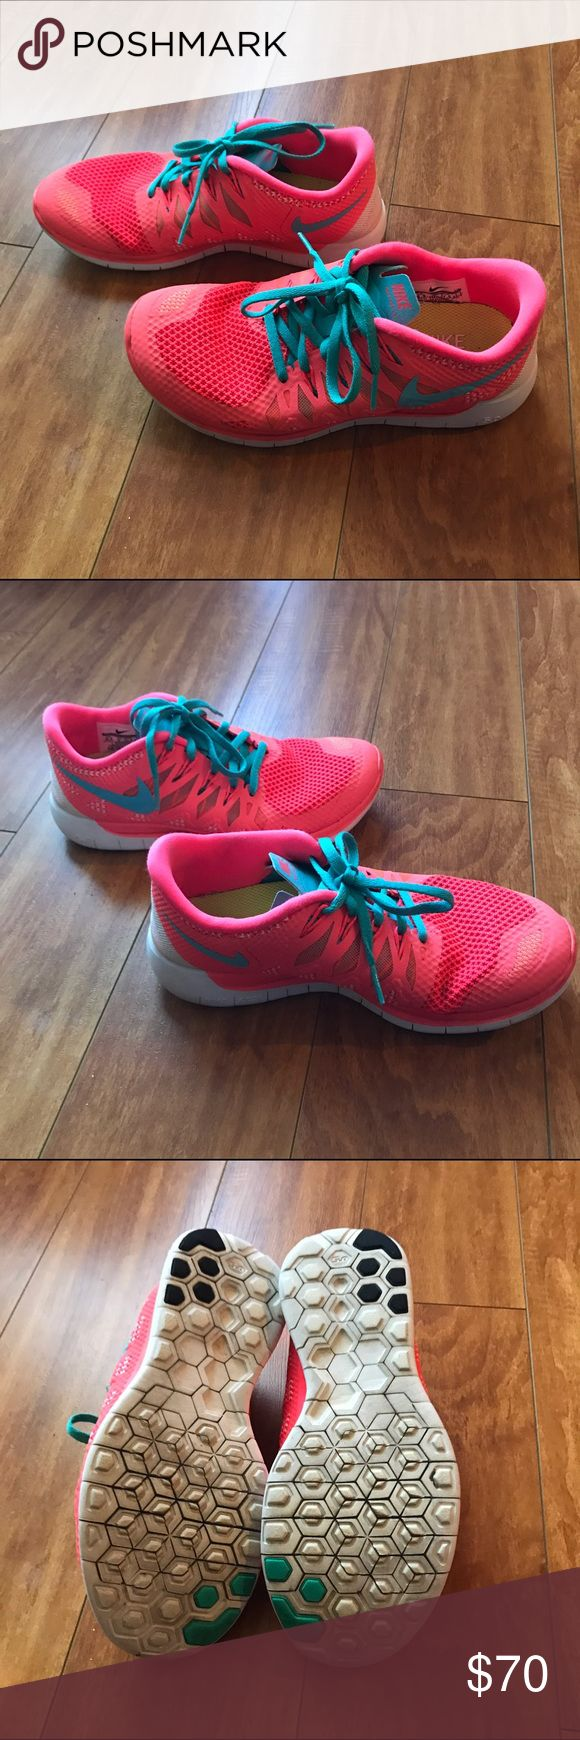 Nike free 5.0 coral orange sneakers shoes Excellent used condition. Nike free 5.0 coral tiffany blue shoes. Size 6.5. Nike Shoes Athletic Shoes